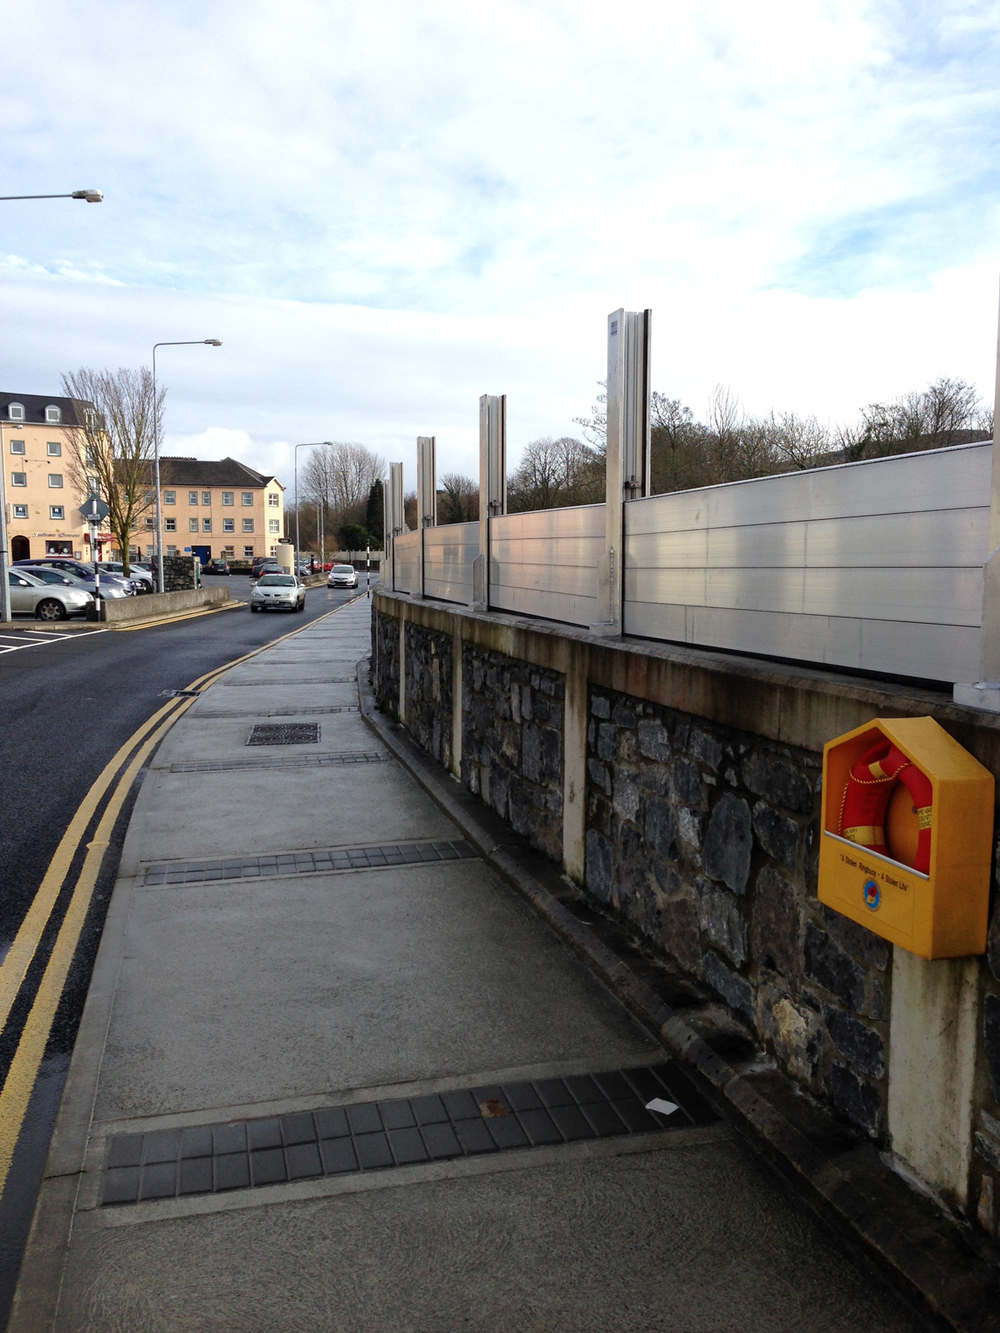 Demountable flood defences partially in place on quay wall along River Suir